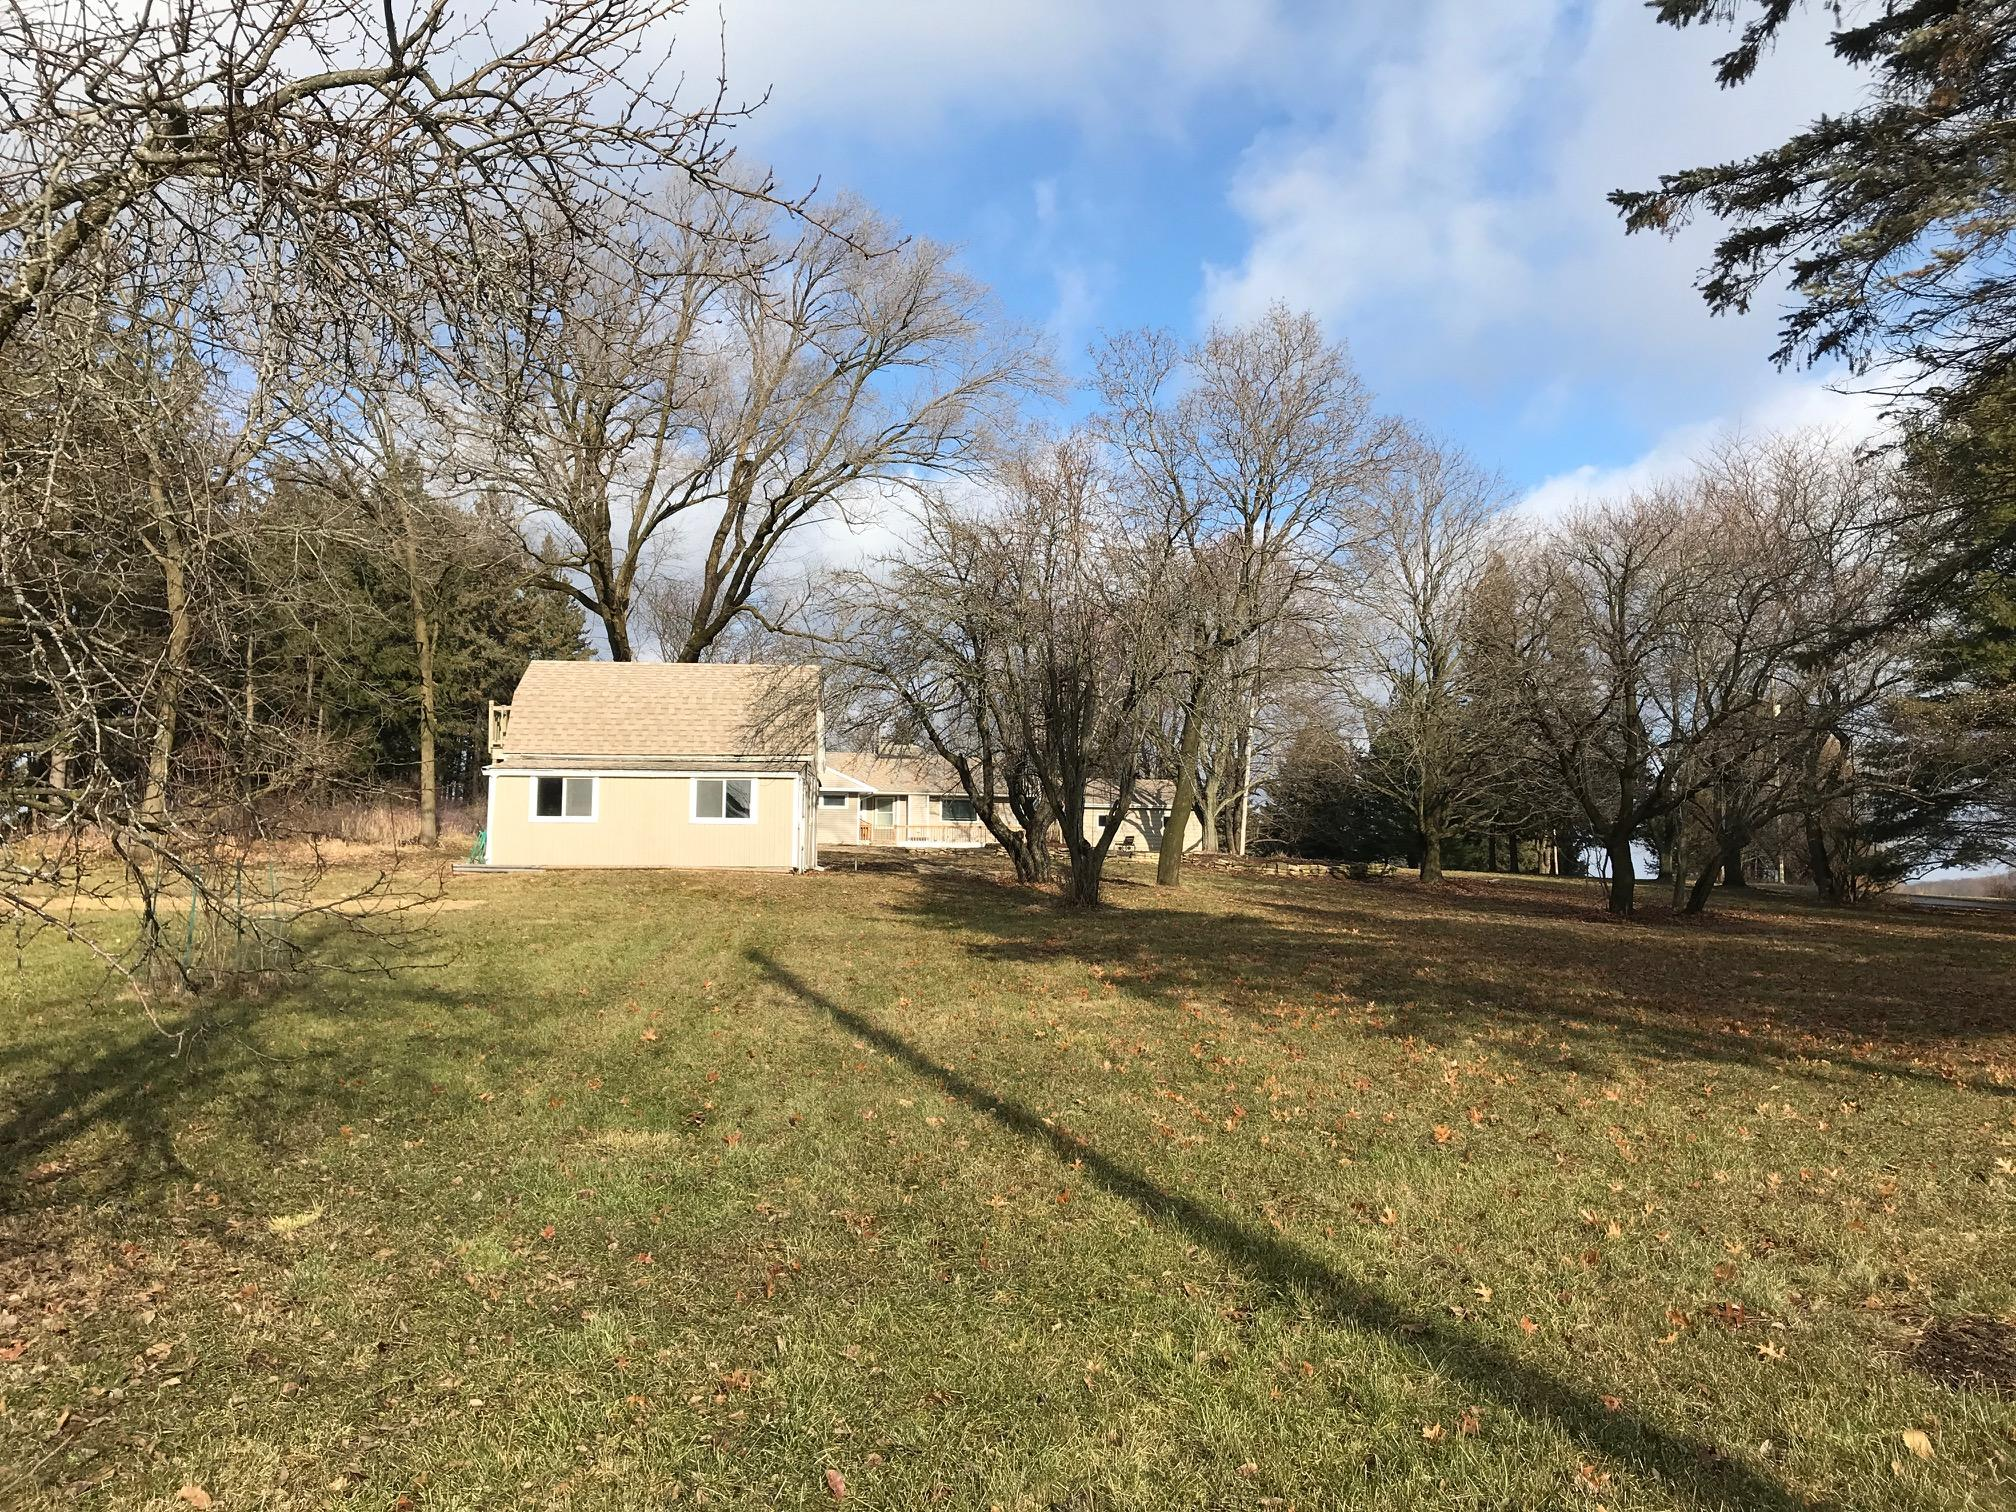 N5W29158 Venture Hill Rd, Delafield, Wisconsin 53188, 3 Bedrooms Bedrooms, ,2 BathroomsBathrooms,Single-Family,For Sale,Venture Hill Rd,1614437